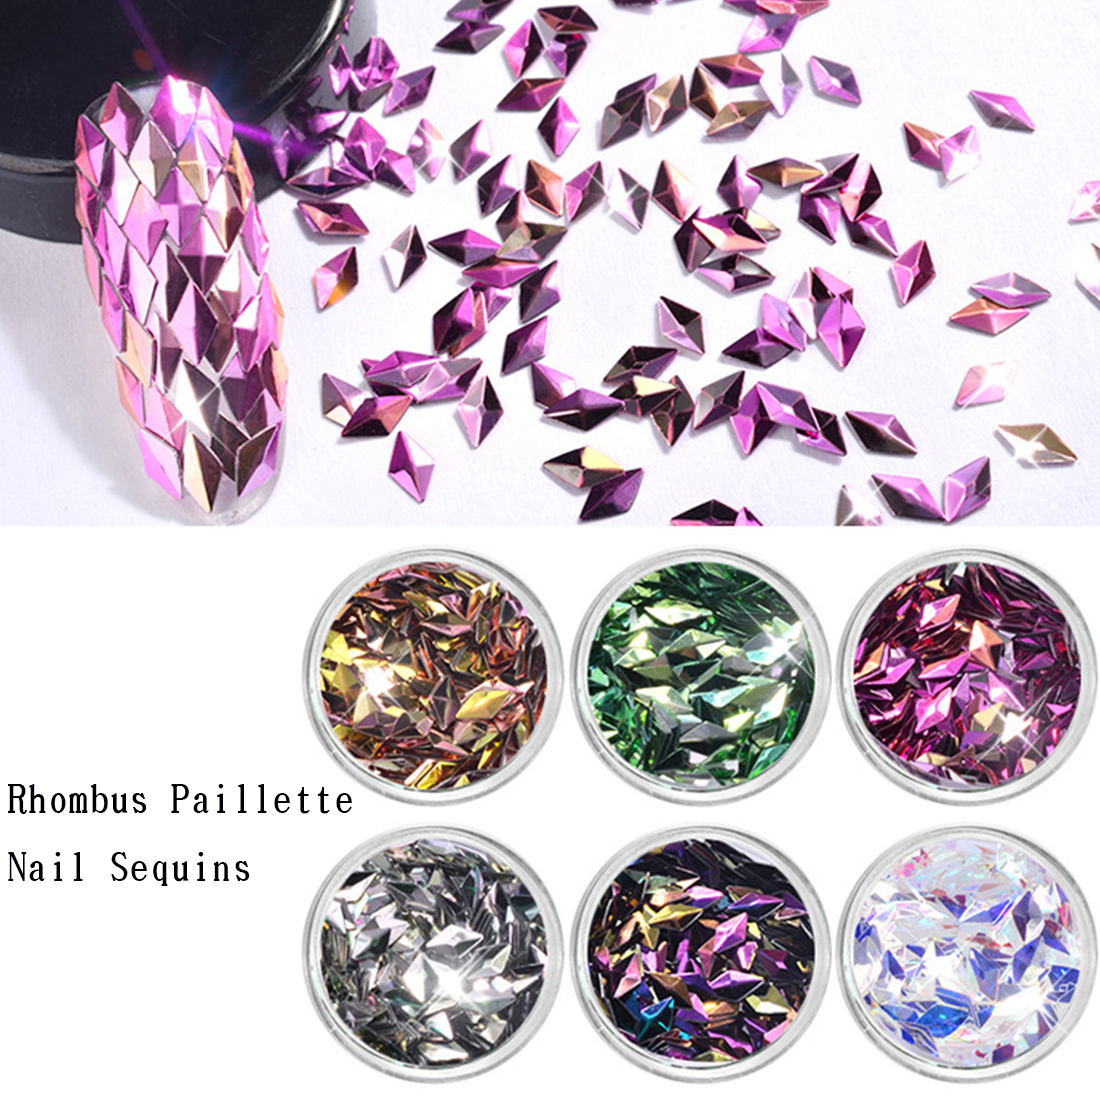 Neue 1 Box Mini Hexagon Form Laser Glänzende Nail Art Glitter Diy Sparkly Paillette Tipps Nagel Maniküre Pailletten Weich Und Leicht Nails Art & Werkzeuge Schönheit & Gesundheit